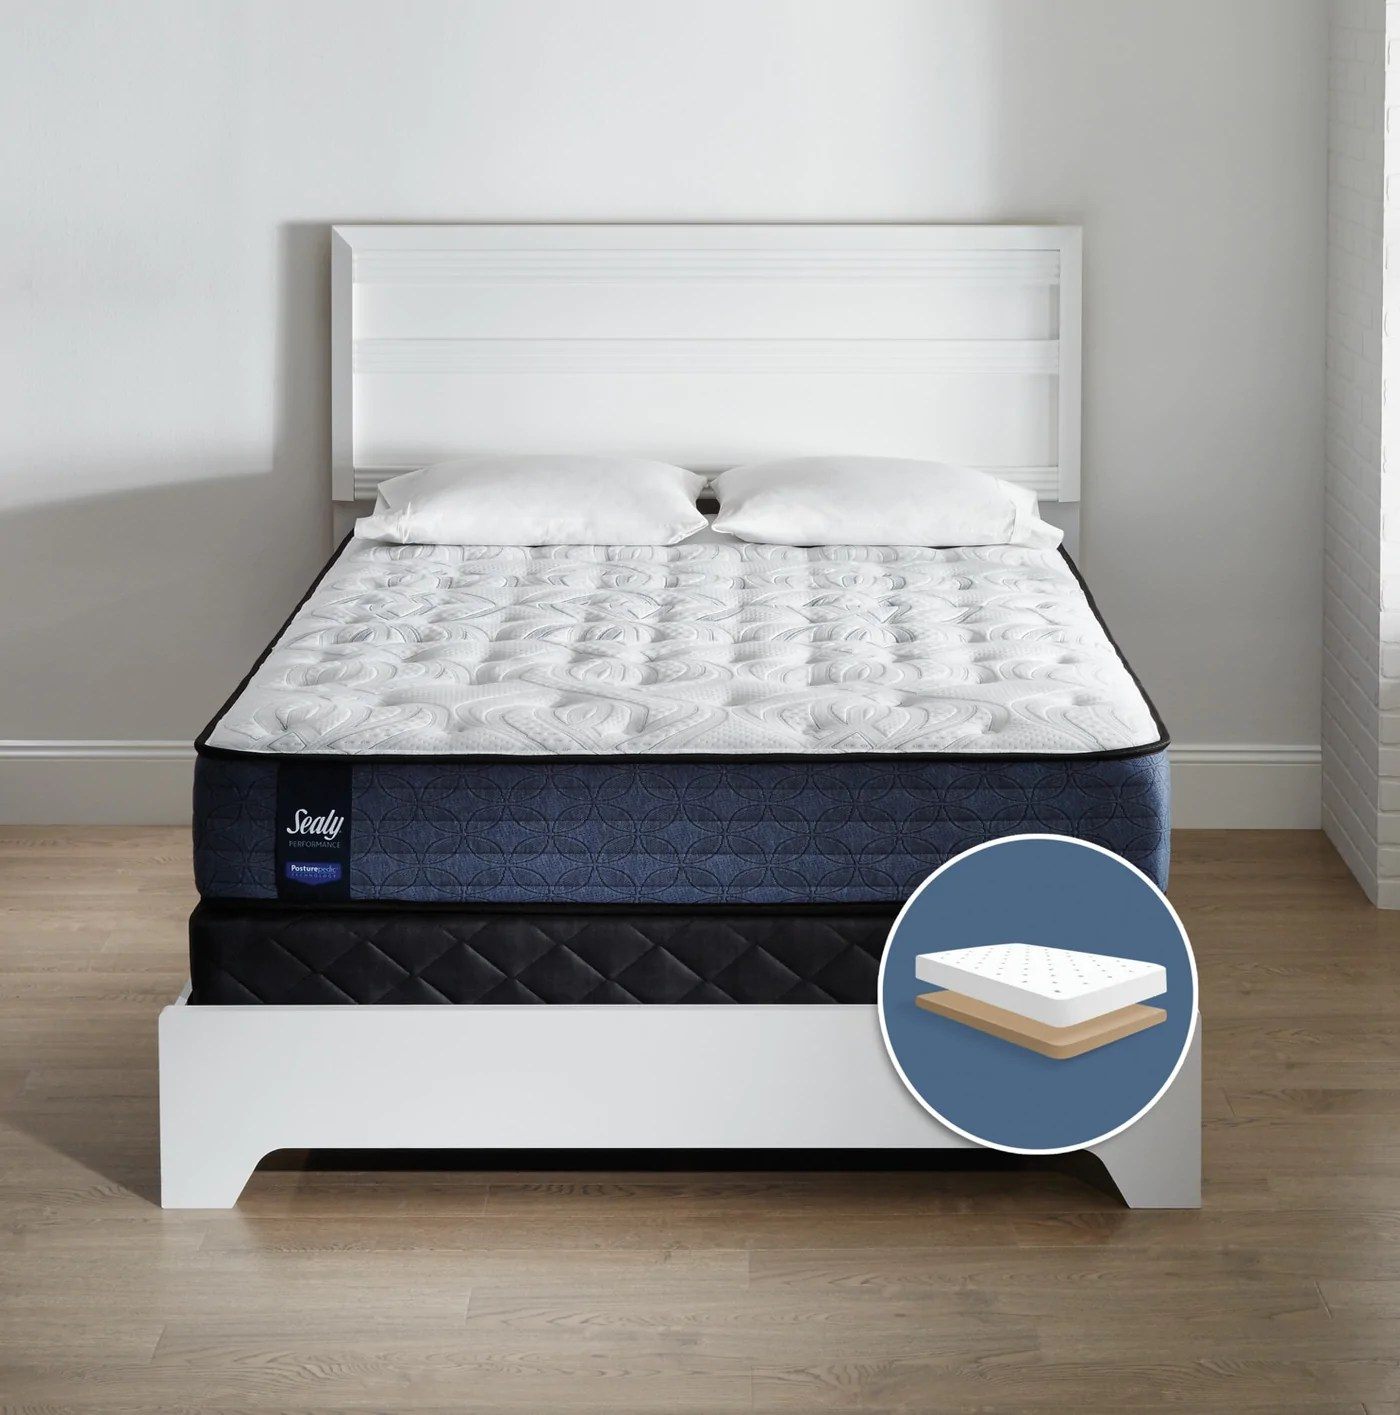 Sommier Bas Sealy Narrative Semi Ferme Ens Matelas Sommier Simple